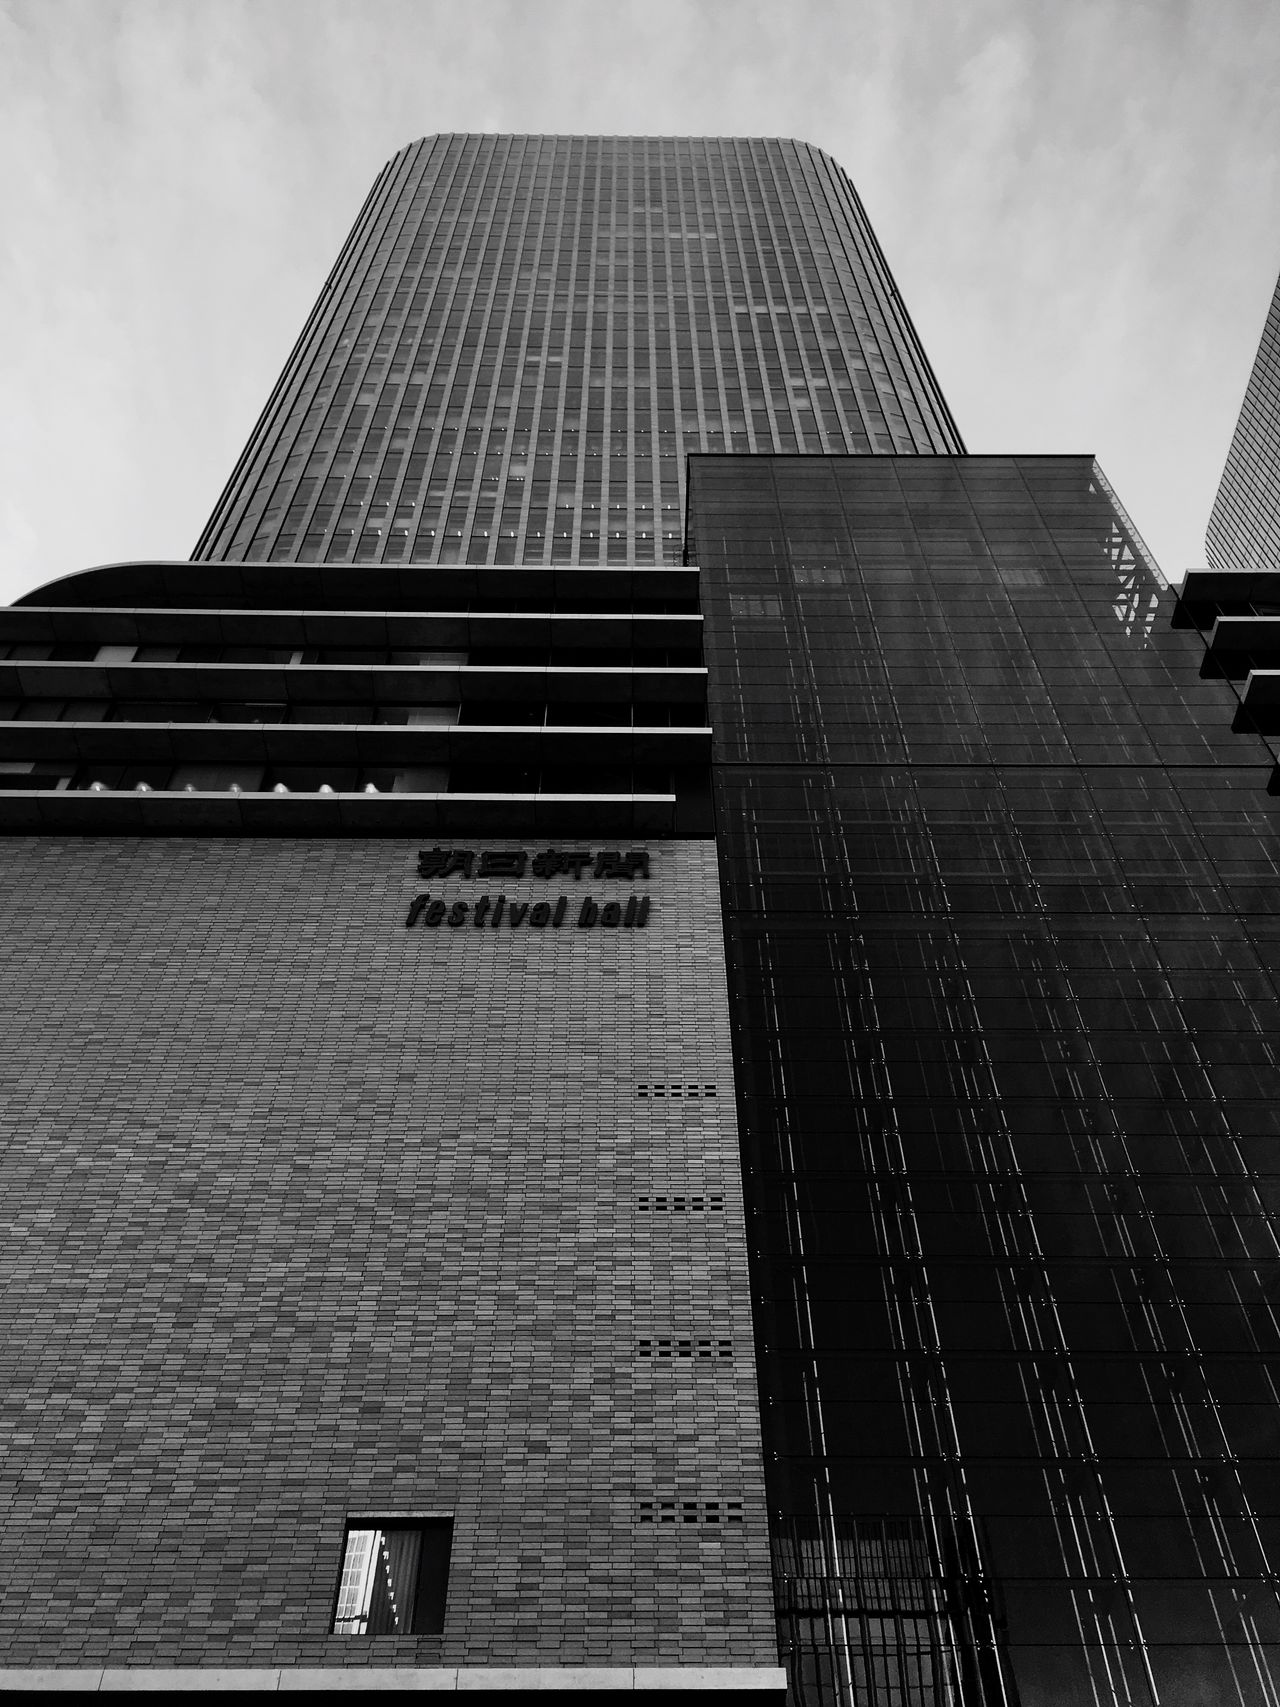 Minimalist Architecture 2017 Eyeem Awards EyeEm Best Shots EyeEm Best Shots - Black + White Modern Architecture Built Structure Low Angle View High Rise Façade Curtain Walls Cityscape Osaca